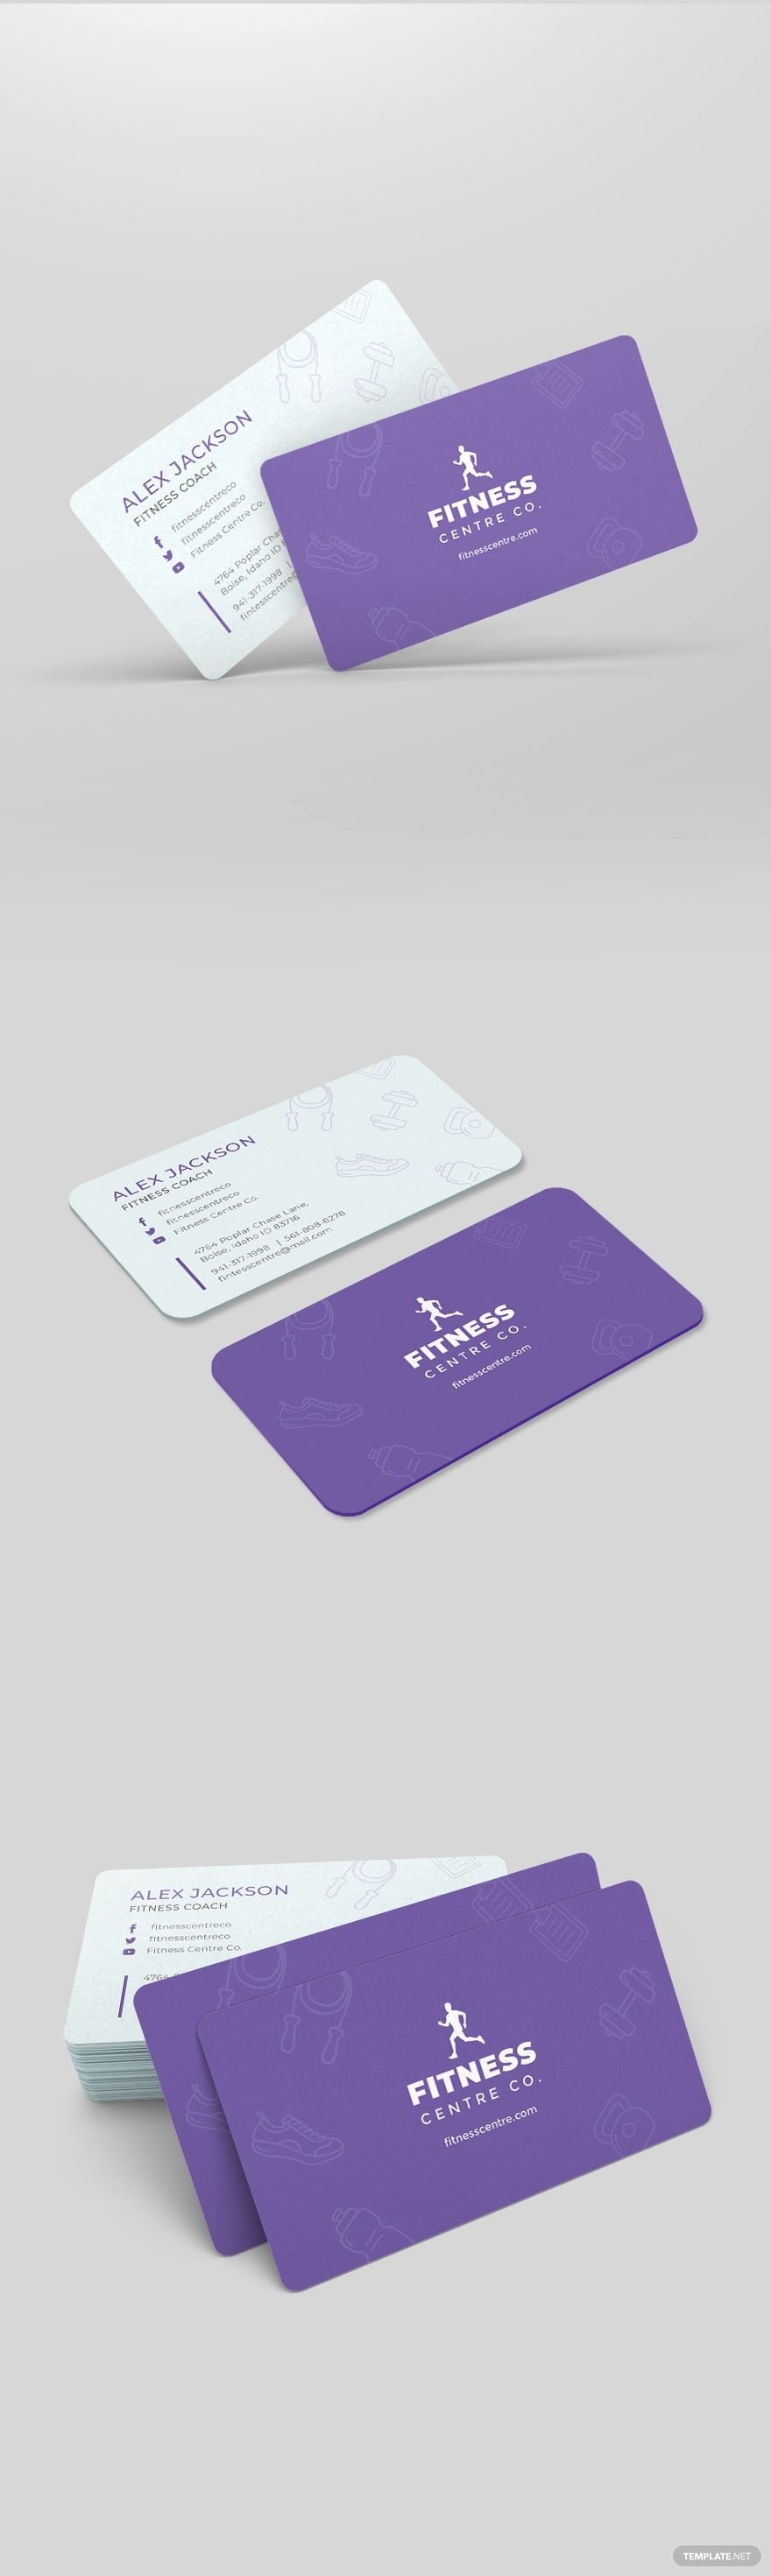 Fitness Center Business Card Template #AD, , #AFFILIATE, #Center, #Fitness, #Business, #Template, #C...